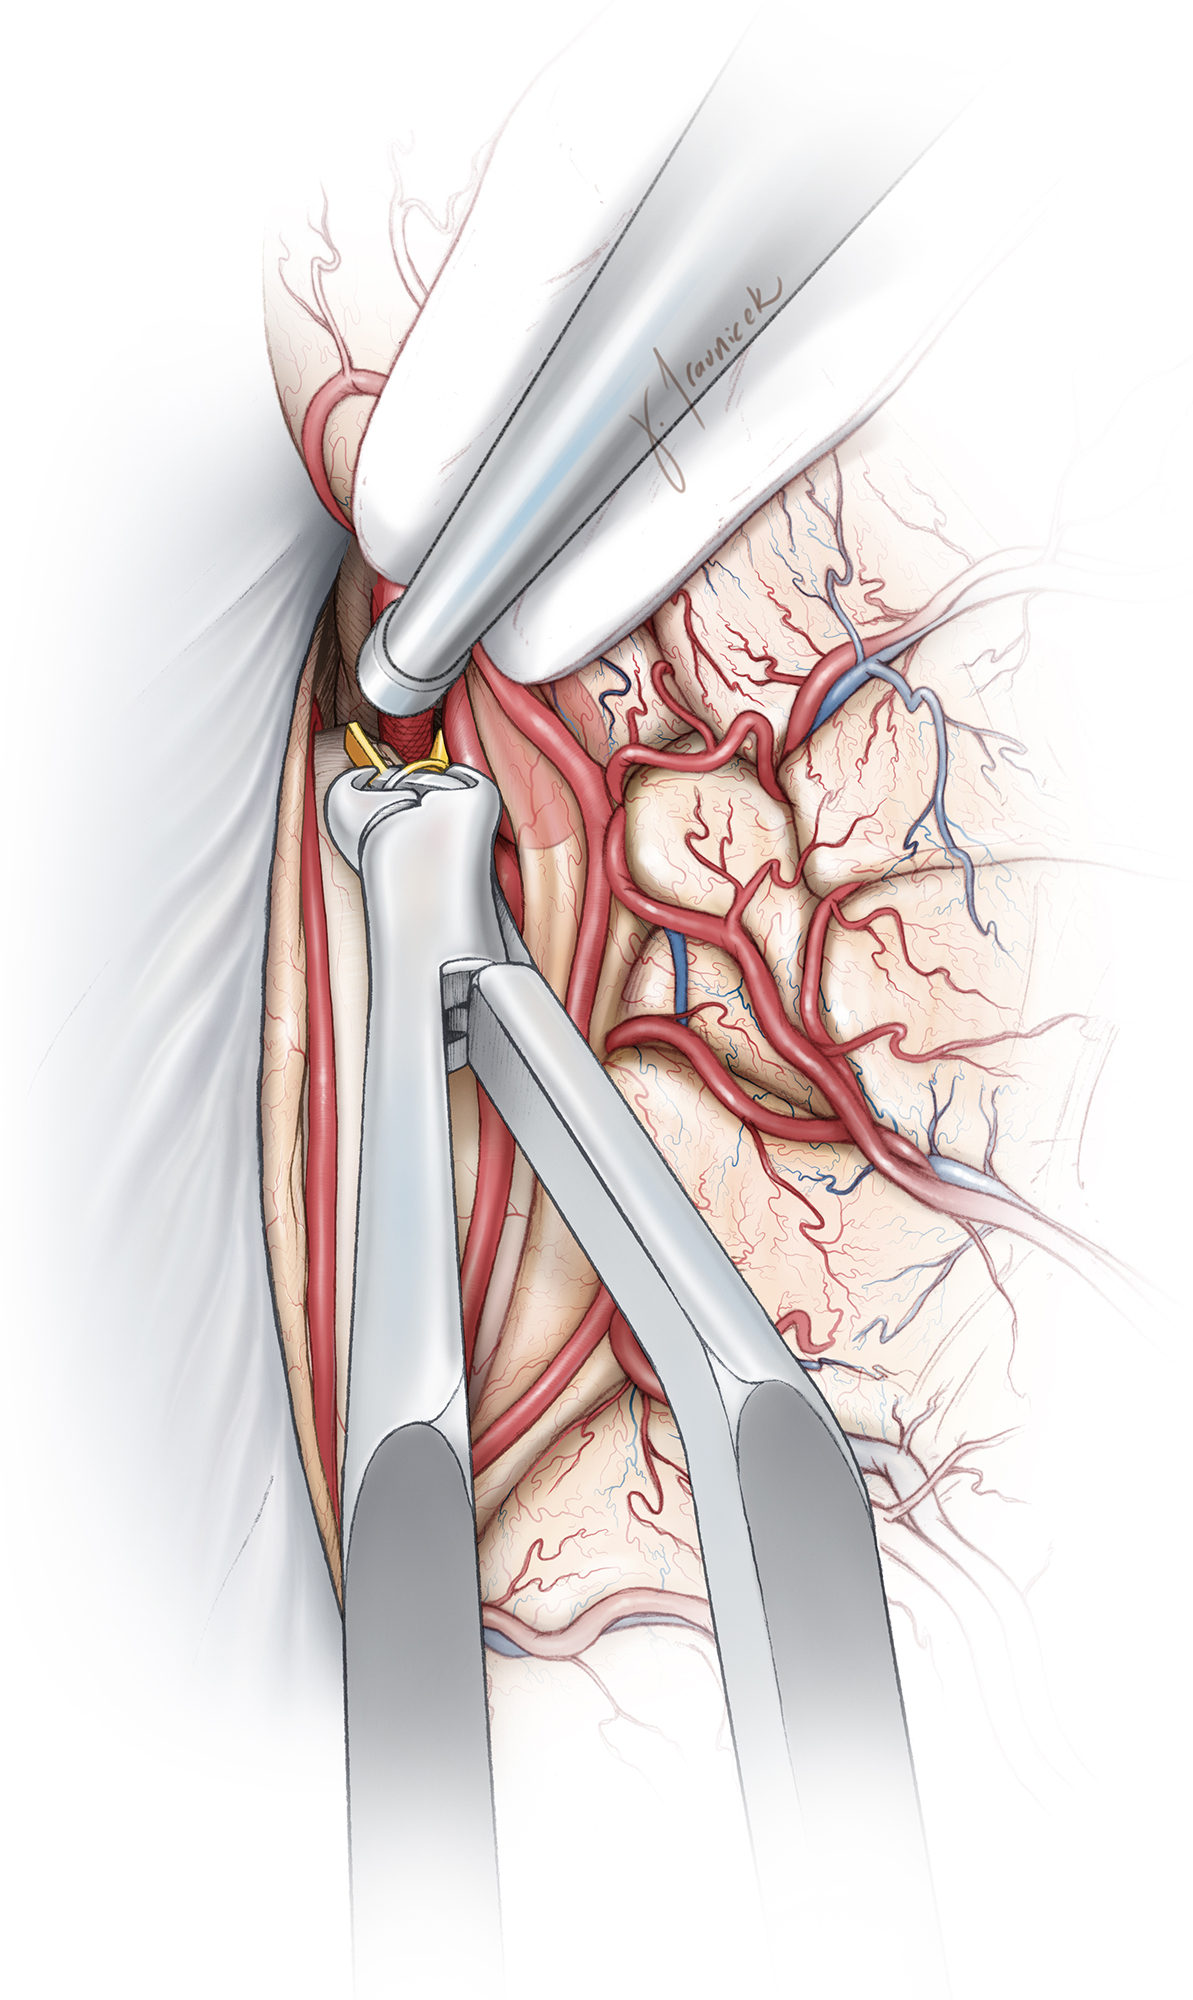 Figure 11: It is imperative to secure proximal control over the ipsilateral A2 before further dissection is contemplated around the neck. I leave the cortex overlying the aneurysm dome intact to avoid premature rupture. Aggressive retraction and manipulation of the surrounding tissues should be avoided to prevent such a rupture. The location of the dome should be kept in mind during subsequent operative maneuvers. Because vascular dissection is conducted in the retrograde distal-to-proximal direction, the lack of immediate proximal control can be unsettling to the surgeon.